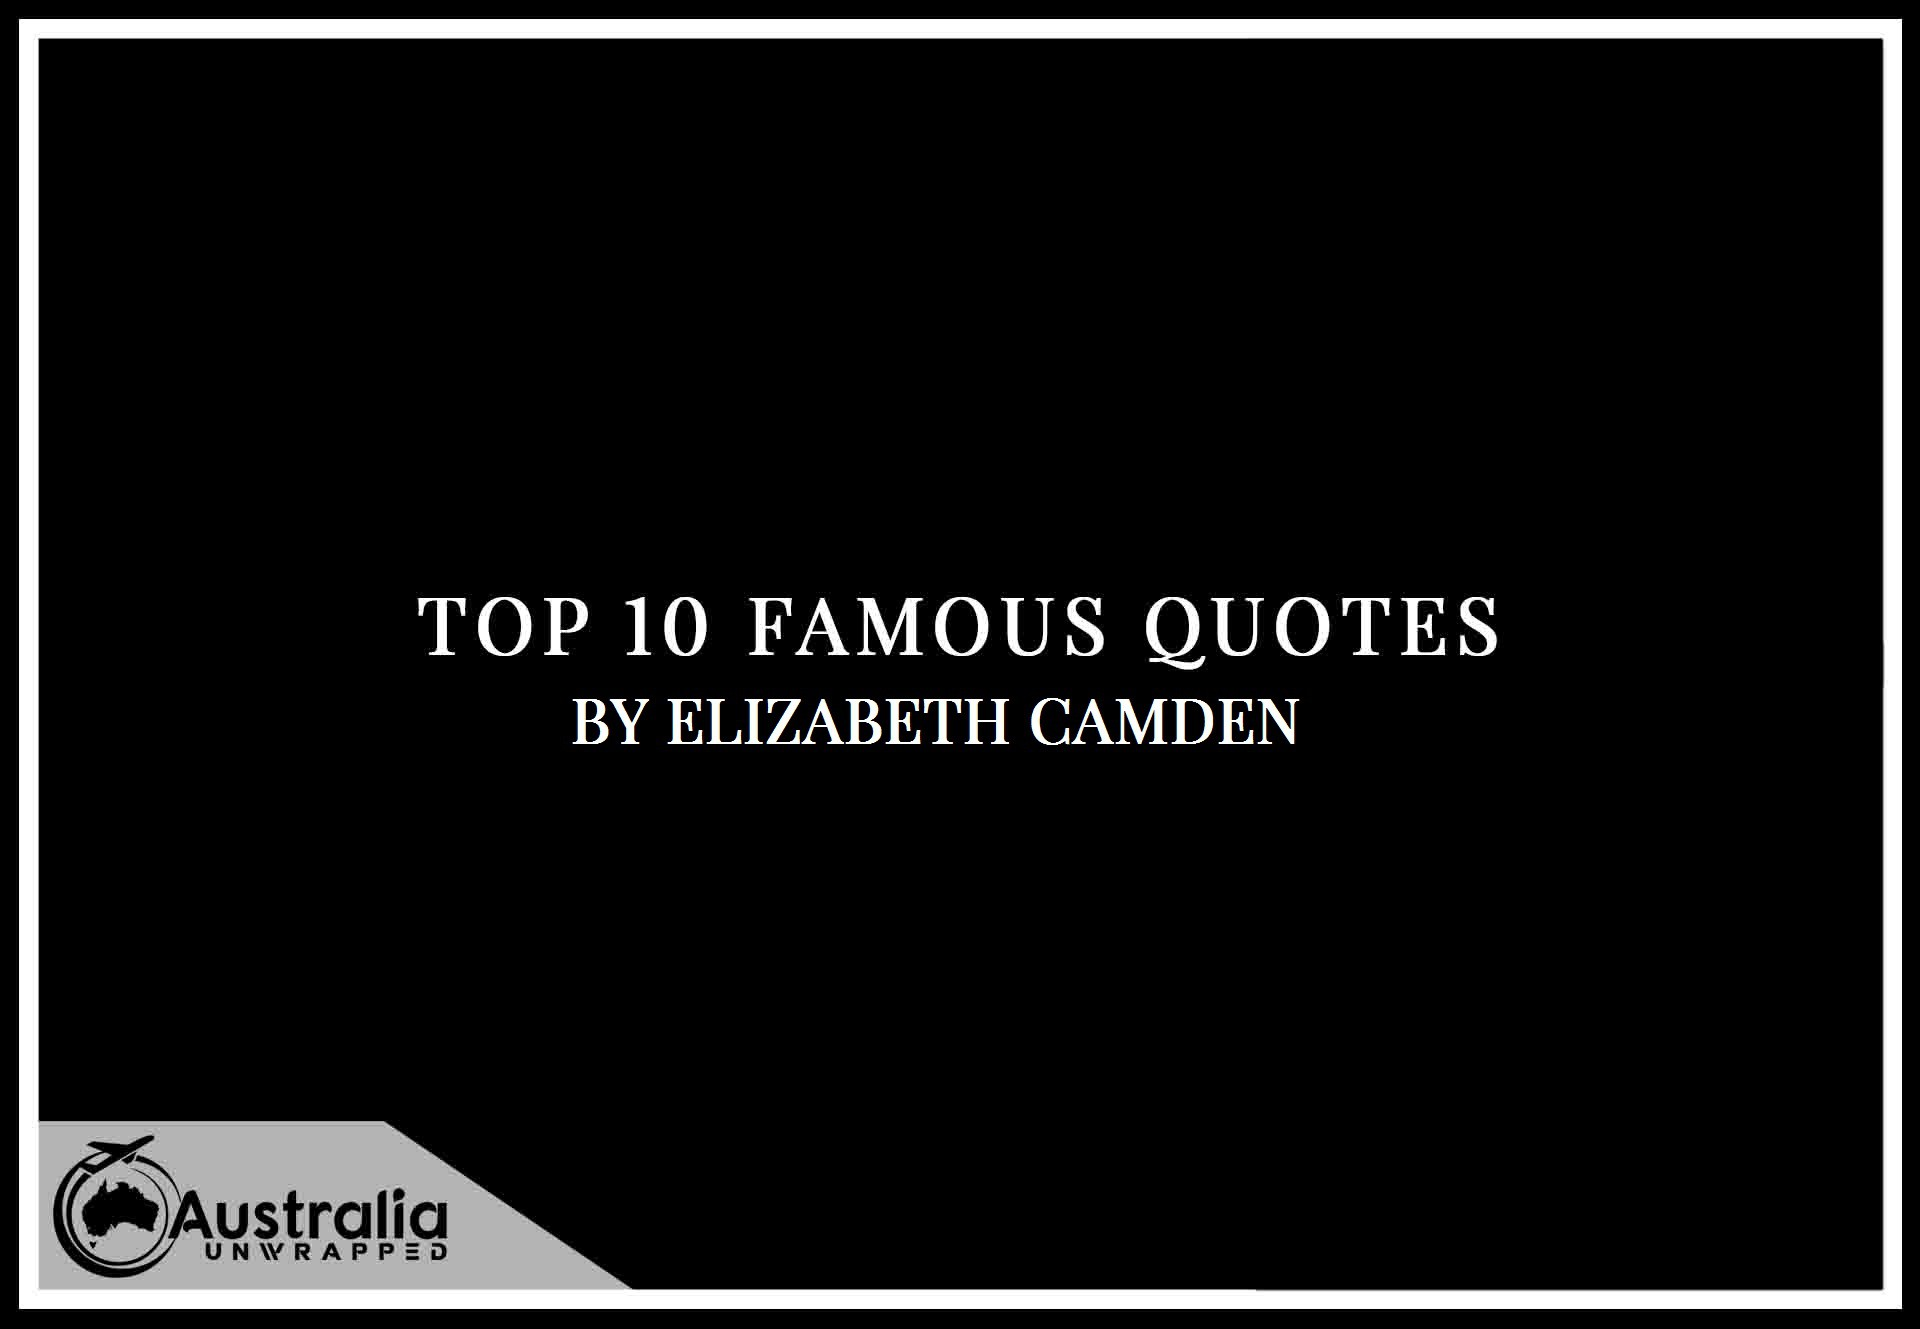 Elizabeth Camden's Top 10 Popular and Famous Quotes